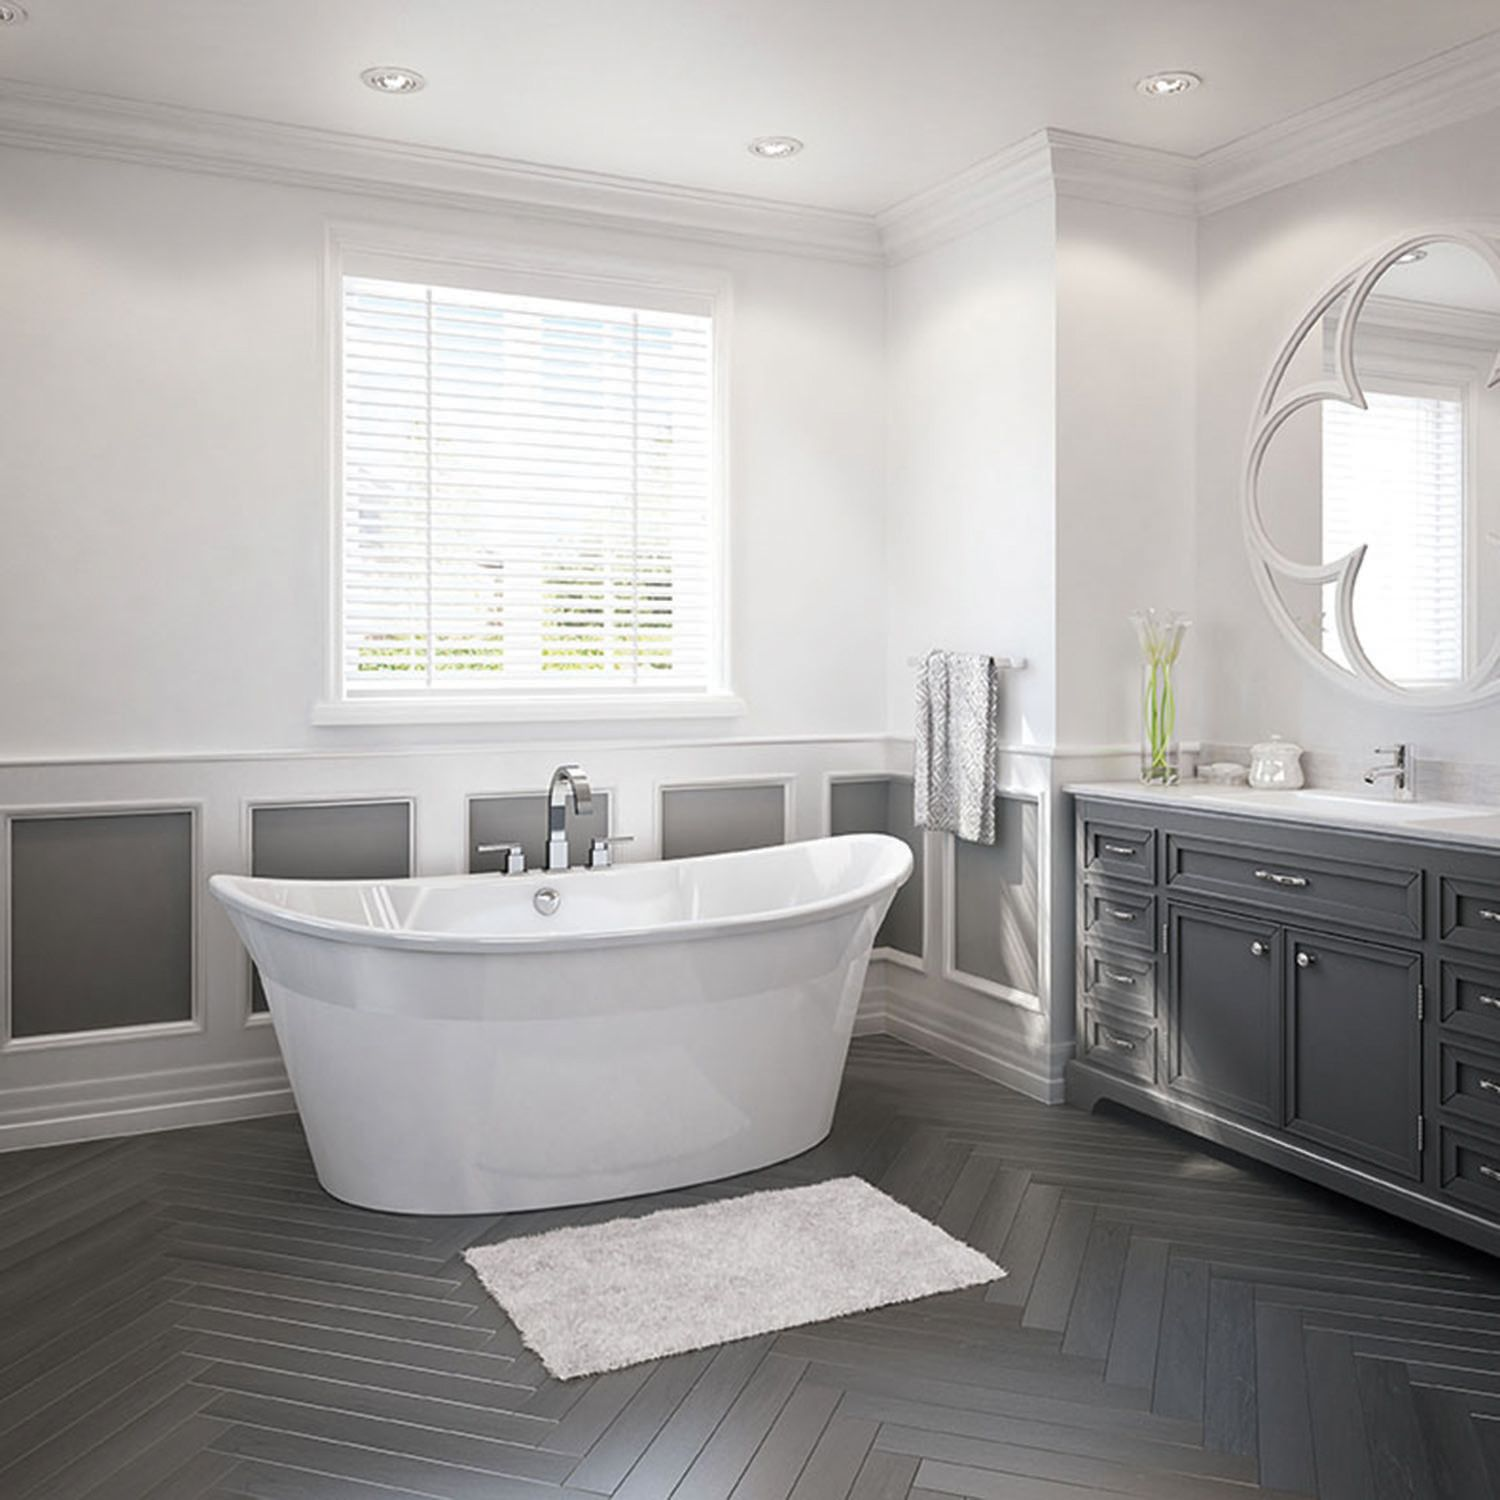 designed long bathrooms. Designed for optimal comfort  the Orchestra 6636 Freestanding Tub has everything you need to relax